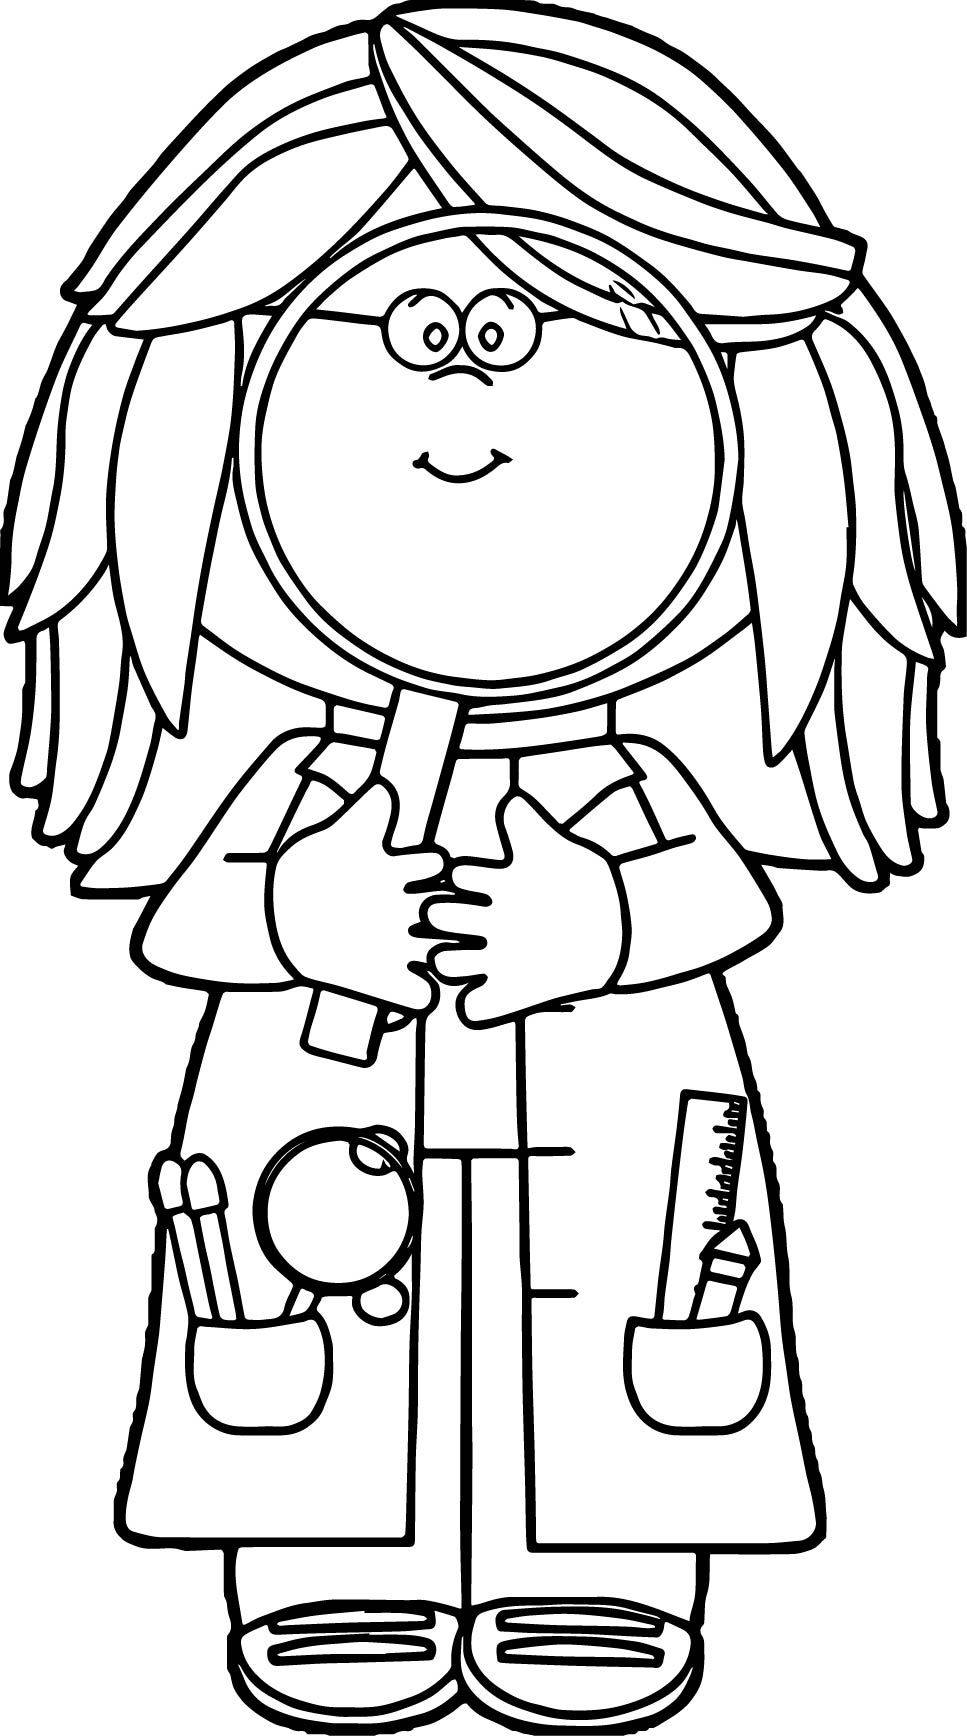 Kid Scientist Looking Through Magnifying Glass Coloring Page Jpg 967 1736 Dinosaur Coloring Pages Kindergarten Colors Scientist Anchor Chart